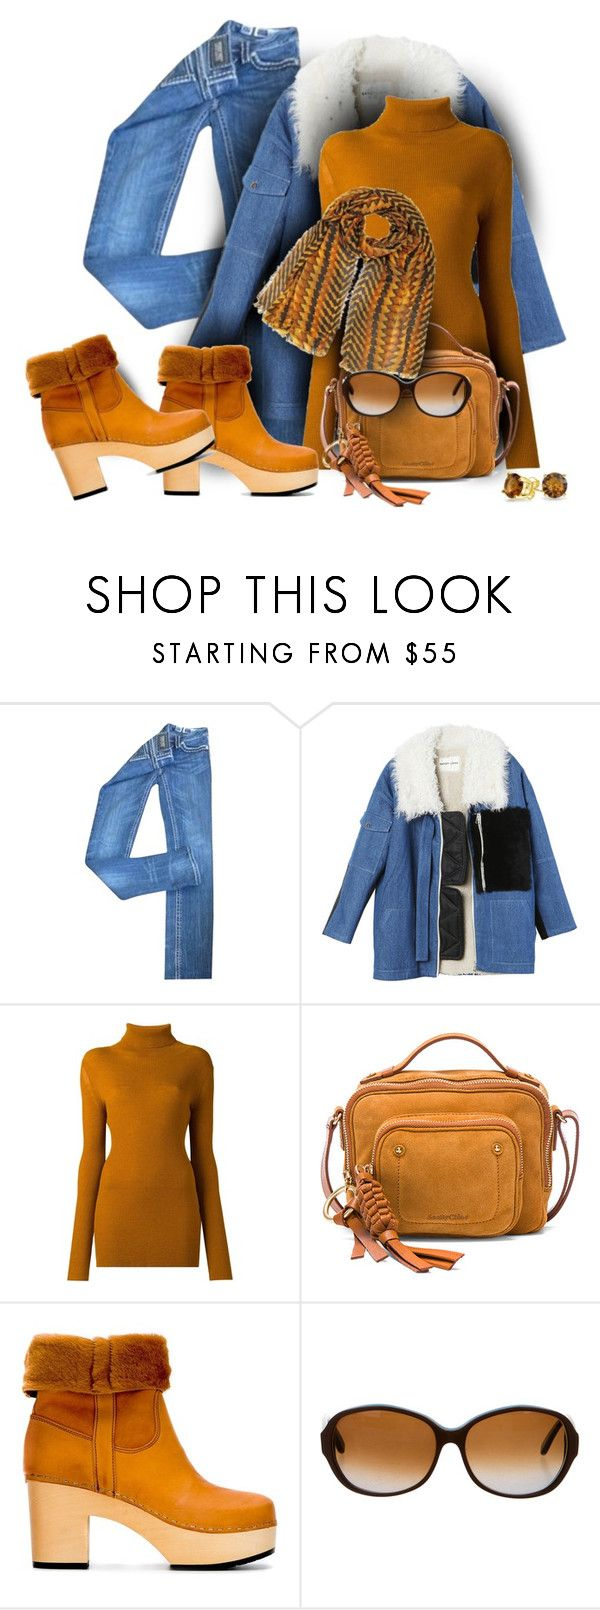 """""""style"""" by sandevapetq ❤ liked on Polyvore featuring Miss Me, Sandy Liang, Ann Demeulemeester, See by Chloé, Swedish Hasbeens, Marni and Bling Jewelry"""